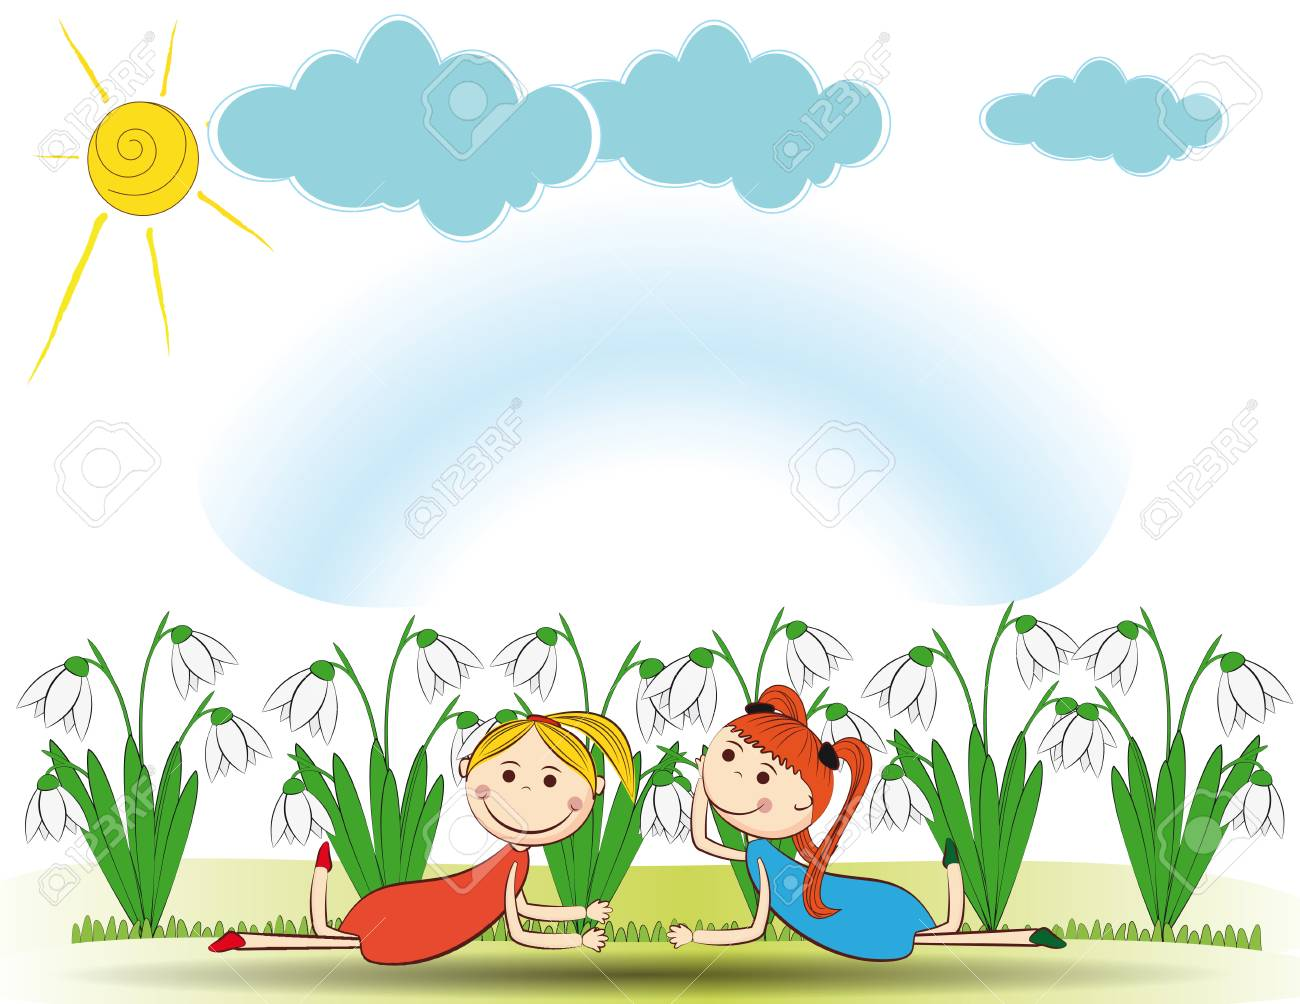 Small and smile girls in spring garden Stock Vector - 24827615